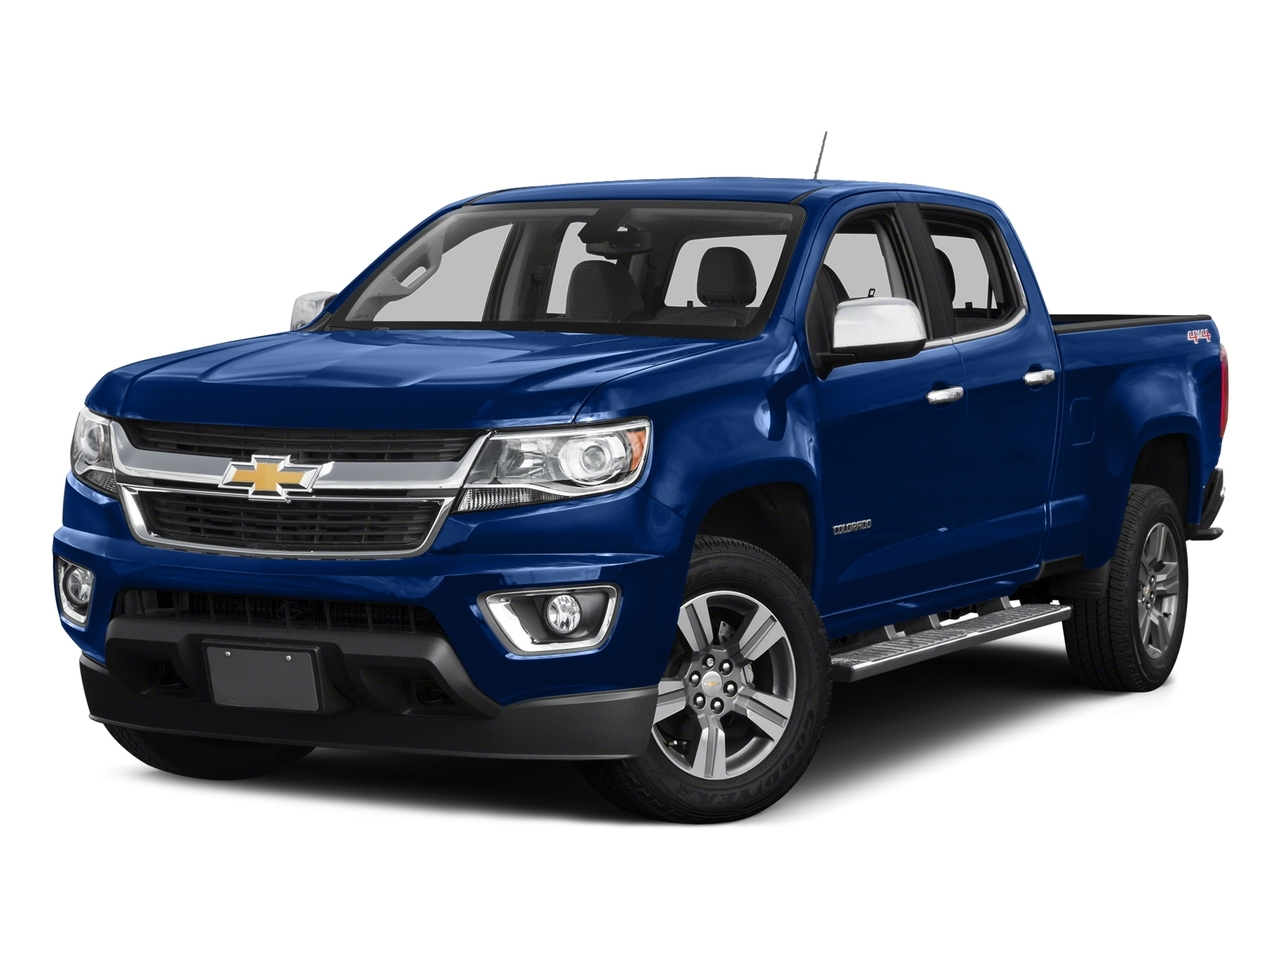 2017 Chevrolet Colorado 2WD LT Crew Cab Pickup Slide 0